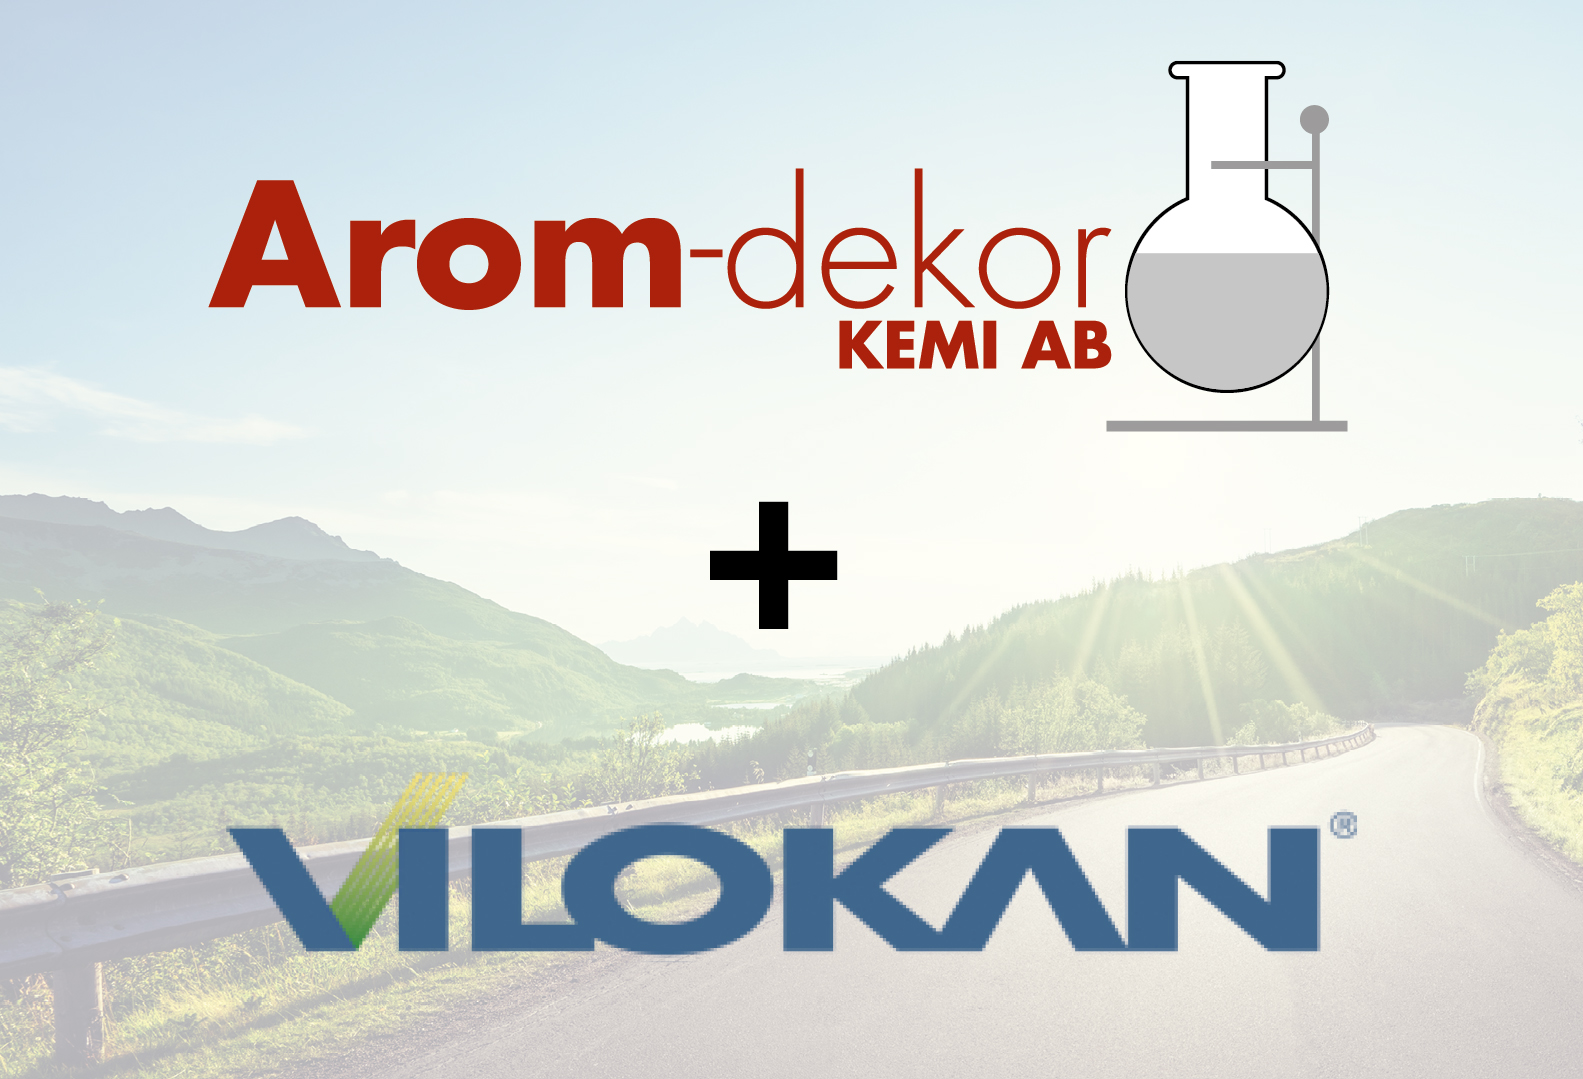 Vilokan AB acquires 80% of the shares in Arom-dekor Kemi AB